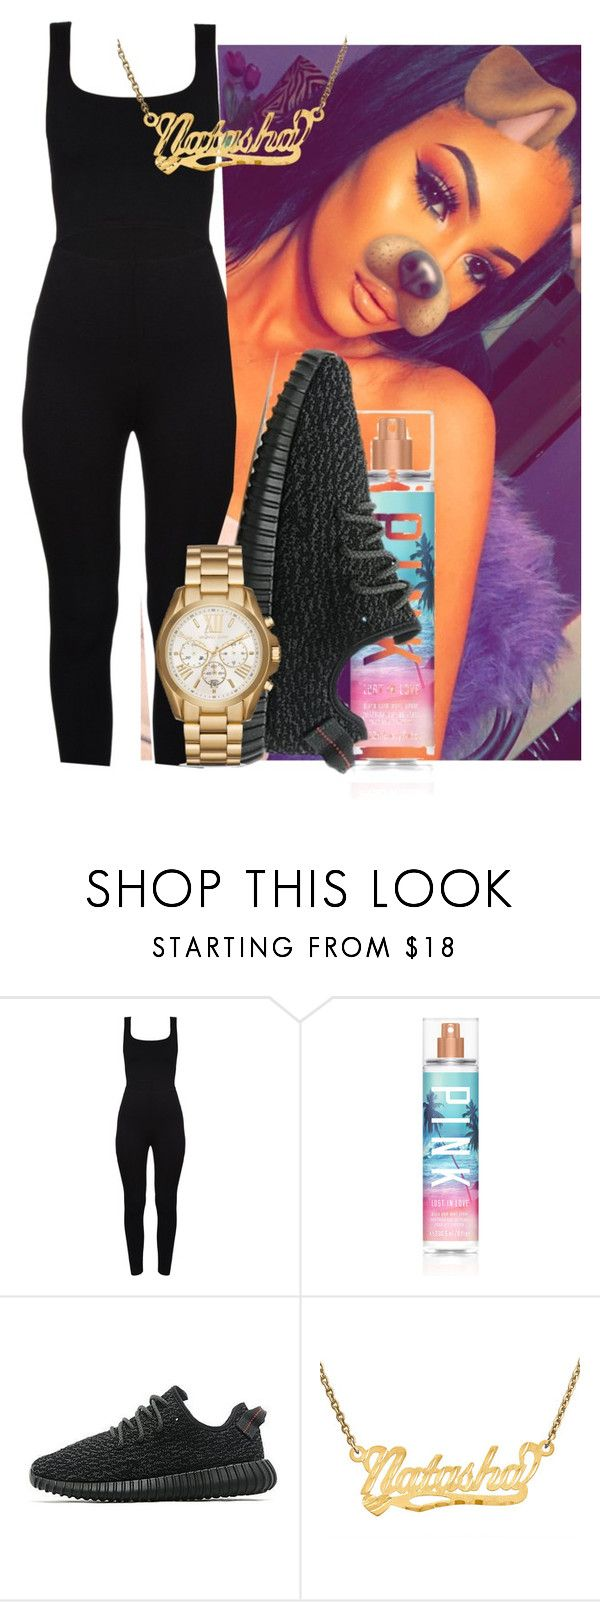 """okaaaay"" by gvlden-bvbx ❤ liked on Polyvore featuring Victoria's Secret, adidas Originals and Michael Kors"